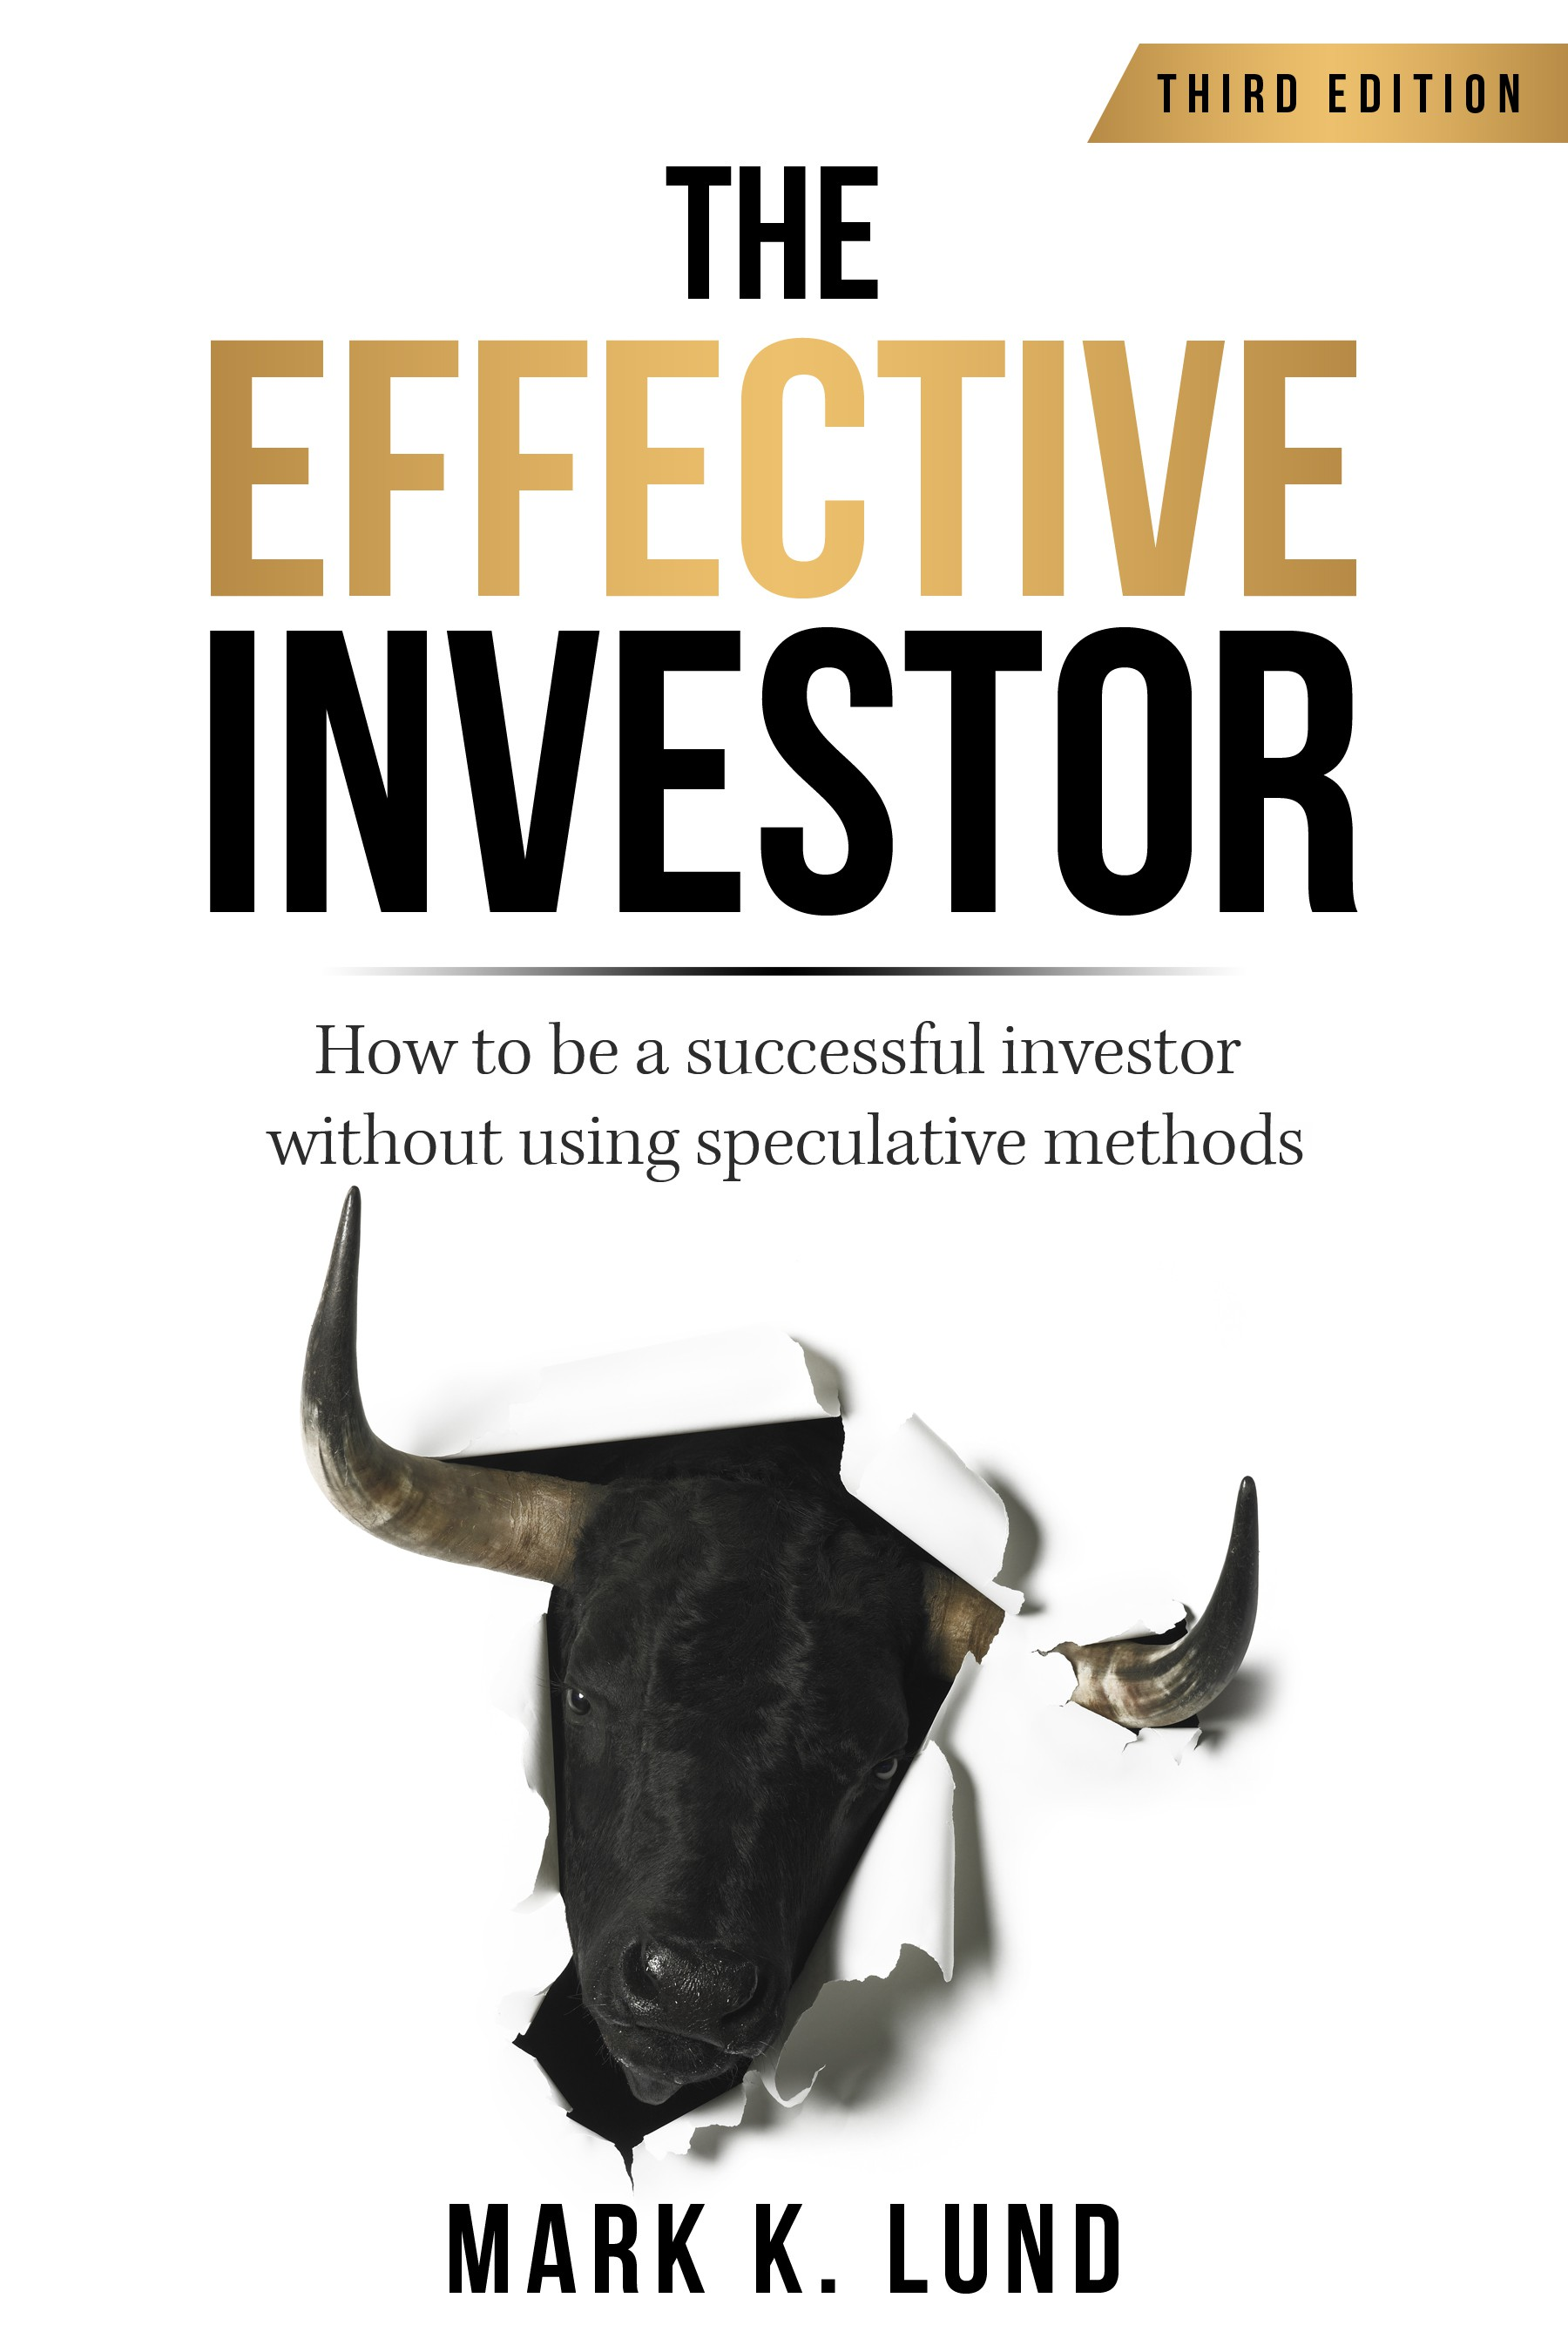 Book cover design for a book on investing